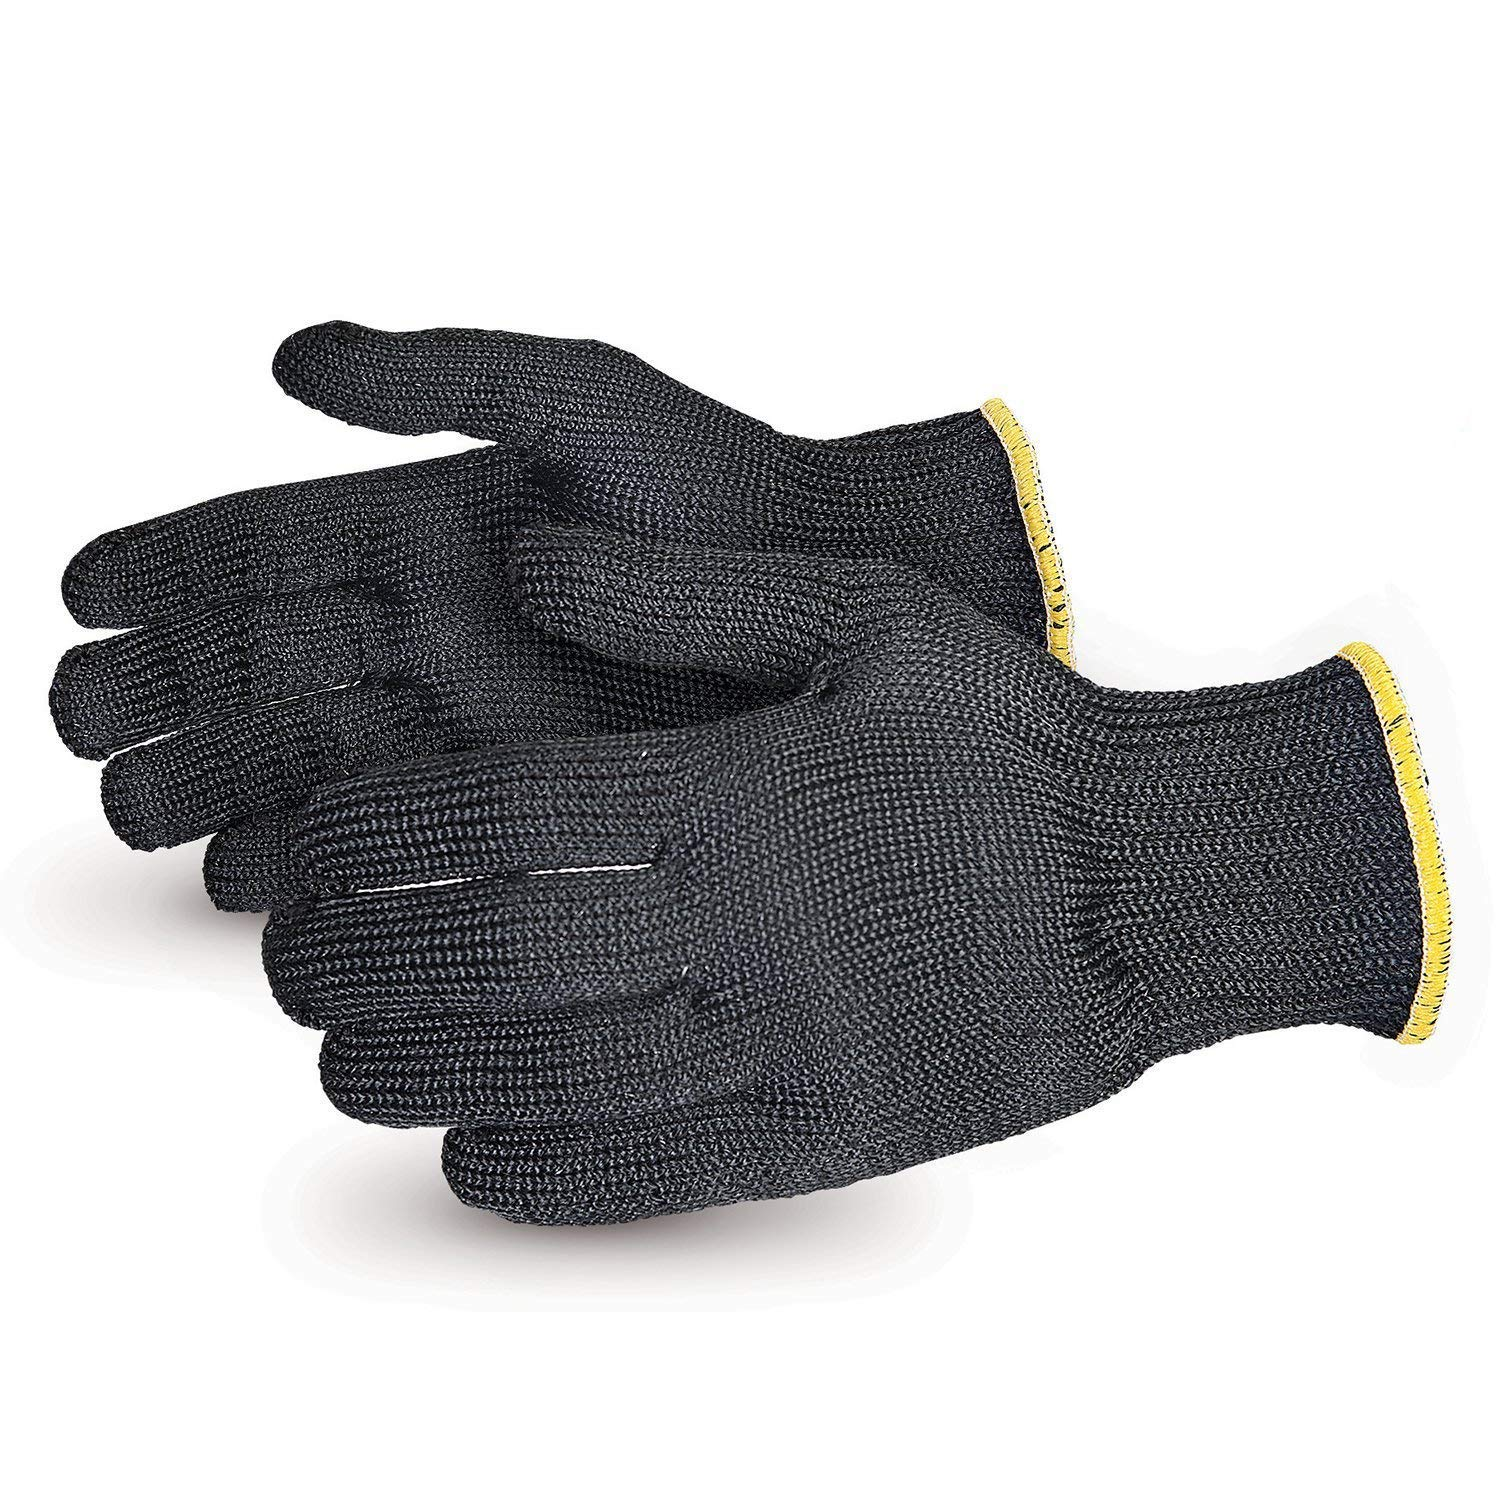 Contender Heavyweight Cut Resistant Glove with Kevlar (1 Pair of Kitchen Heat Resistant Gloves - SBKG/M) Size Medium by Superior Glove (Image #1)